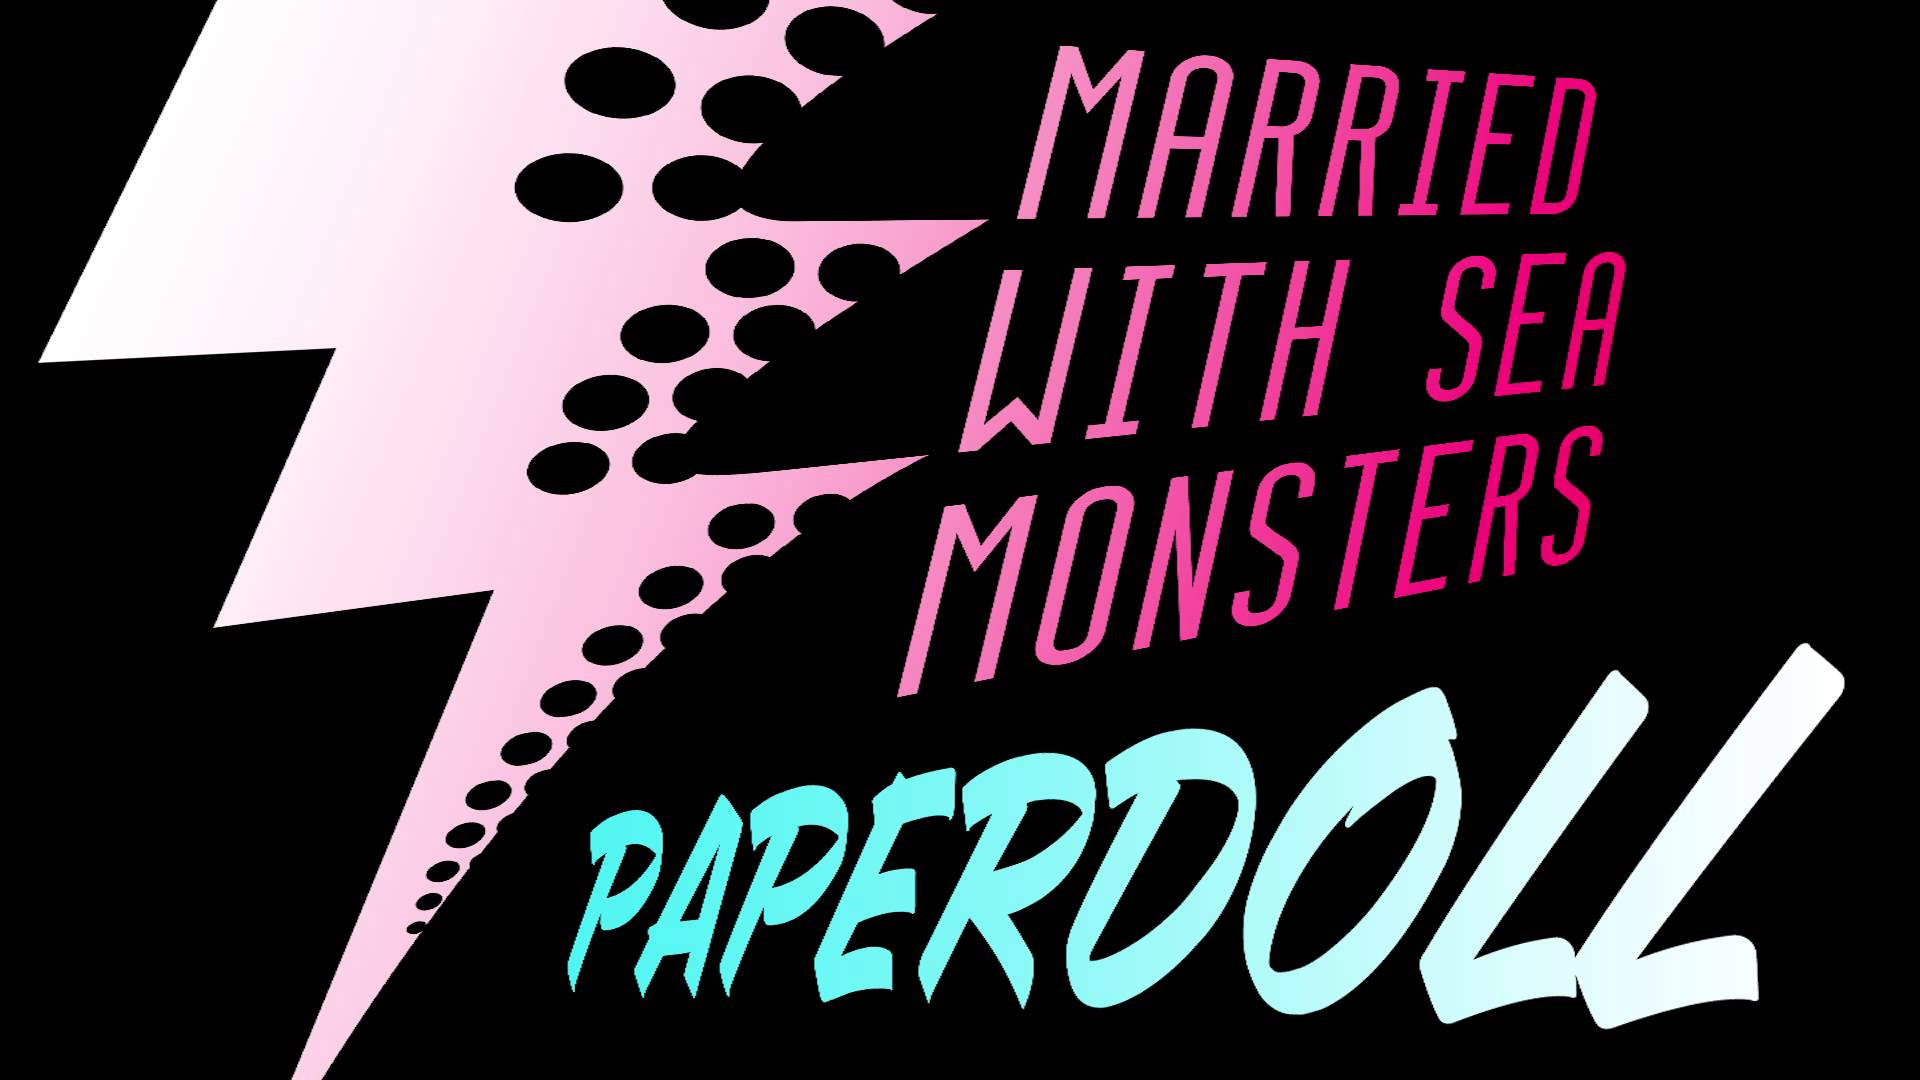 Tastes Like Rock - Married With Sea Monsters- PaperDoll Review